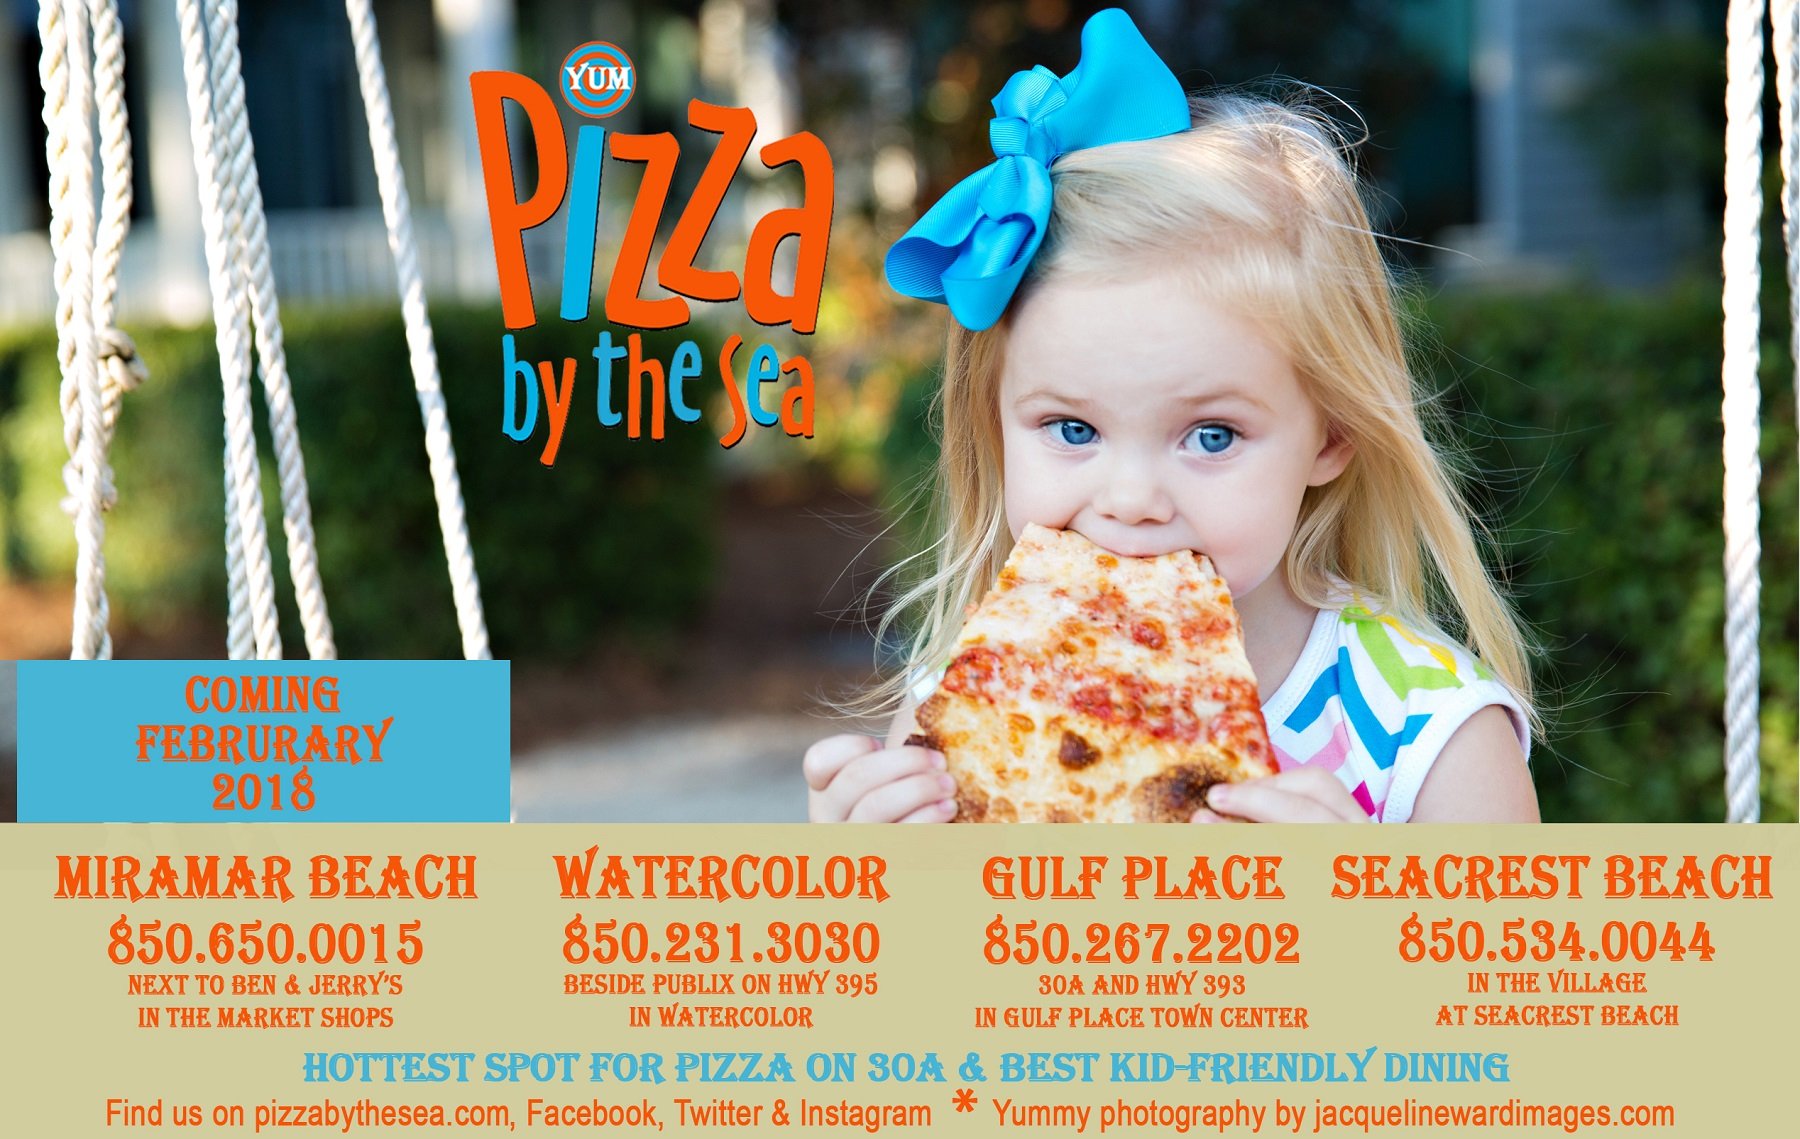 Pizza by the Sea 30A's Best Pizza